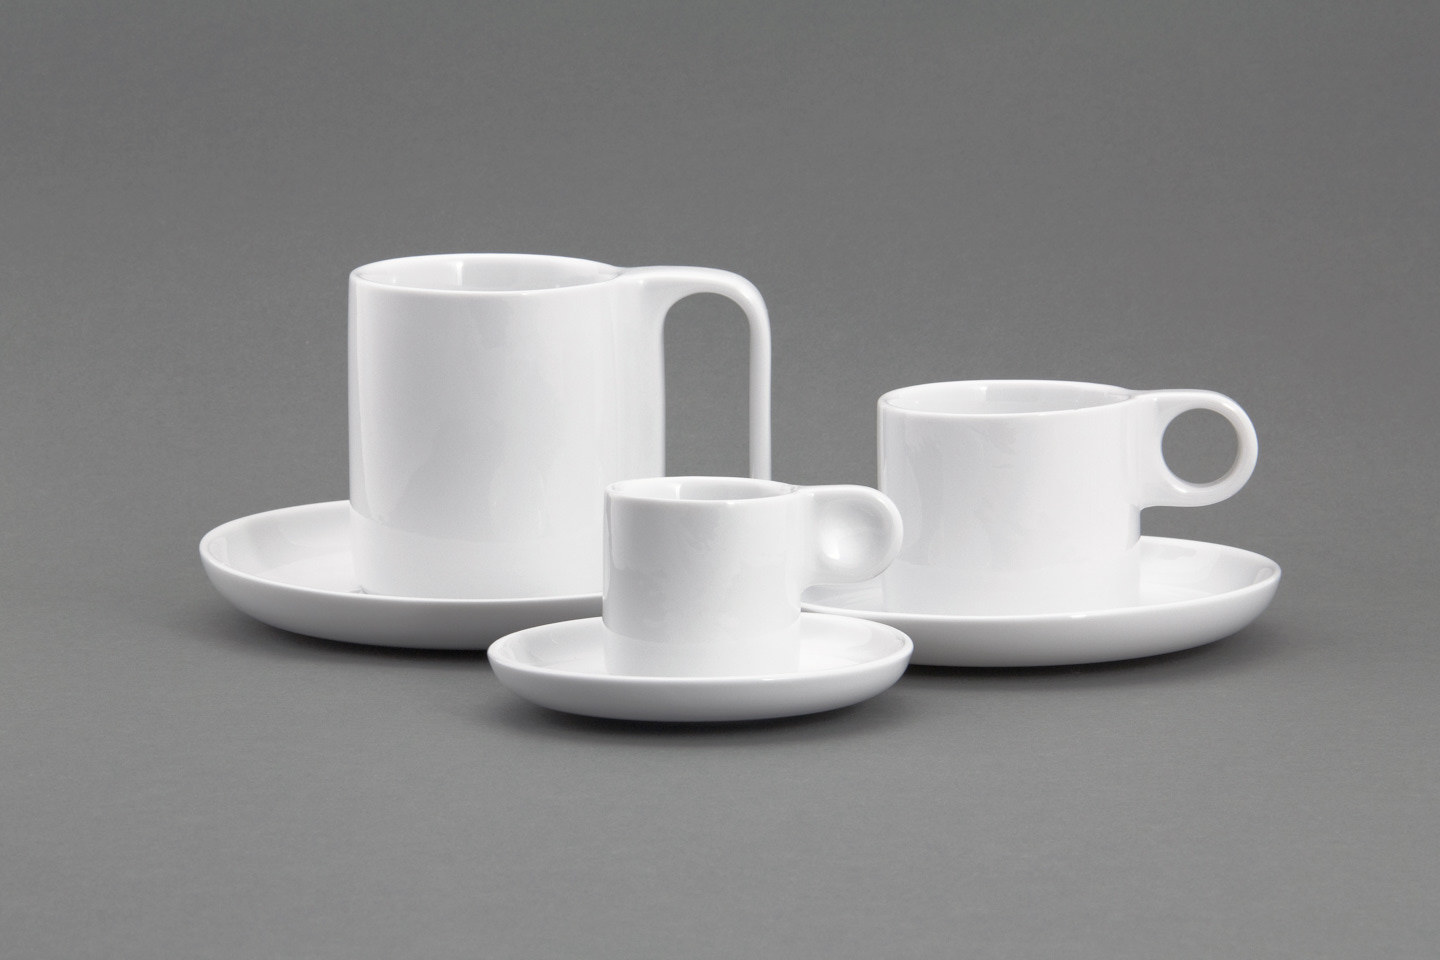 Coffee Cups Office For Product Design